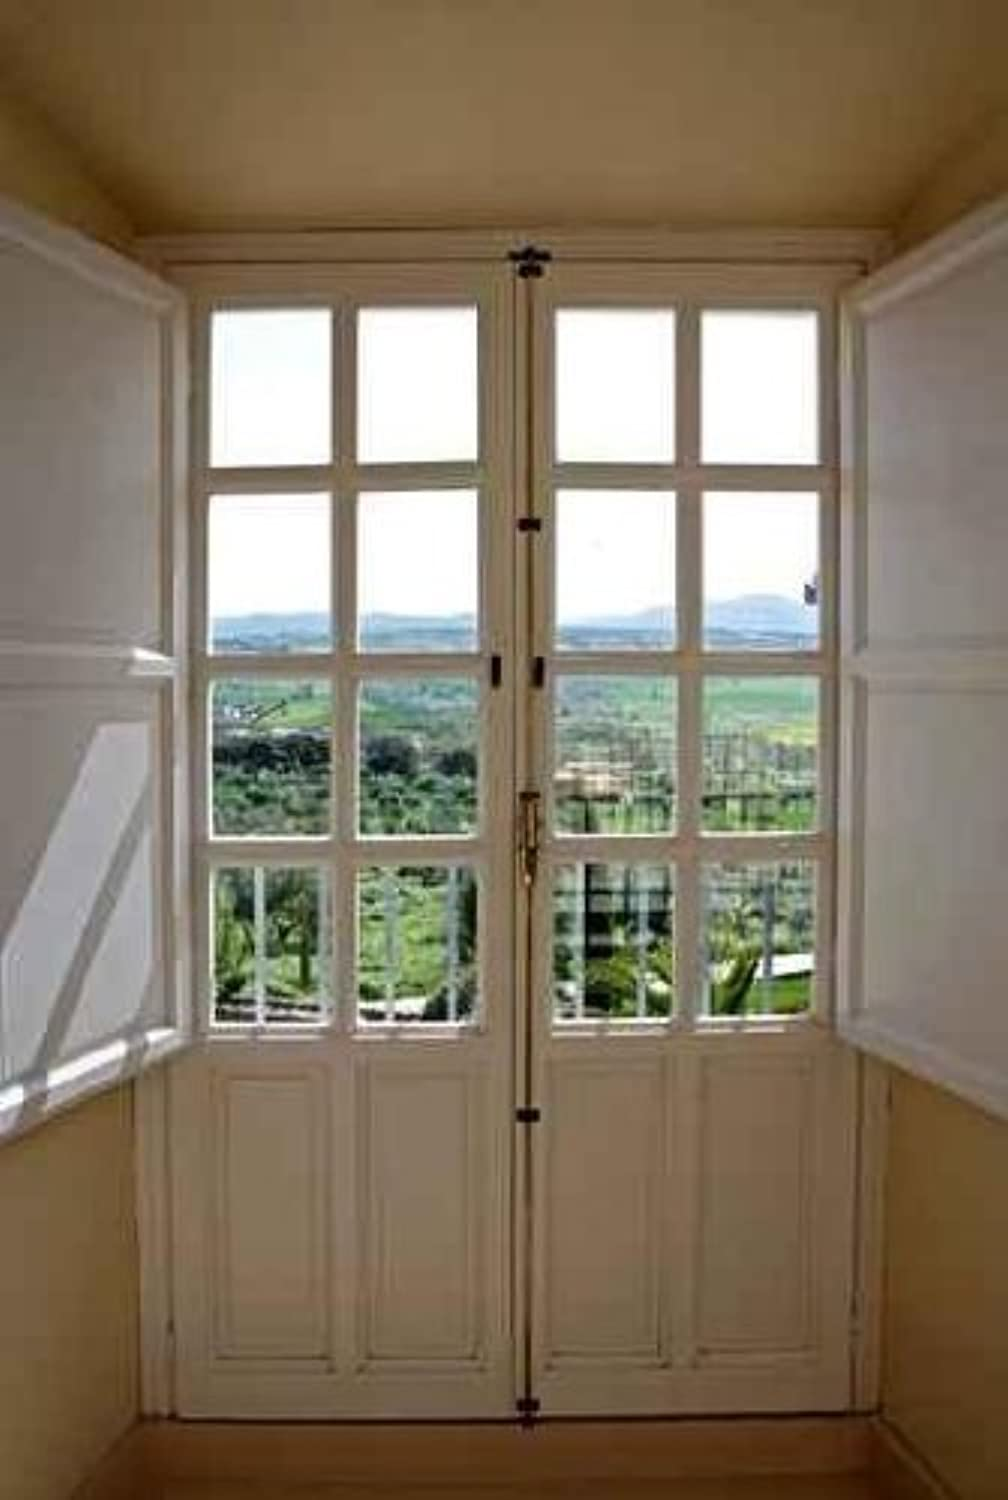 Wallmonkeys View Through Wooden Doors to Countryside - 110cm H x 70cm W - Peel and Stick Wall Decal